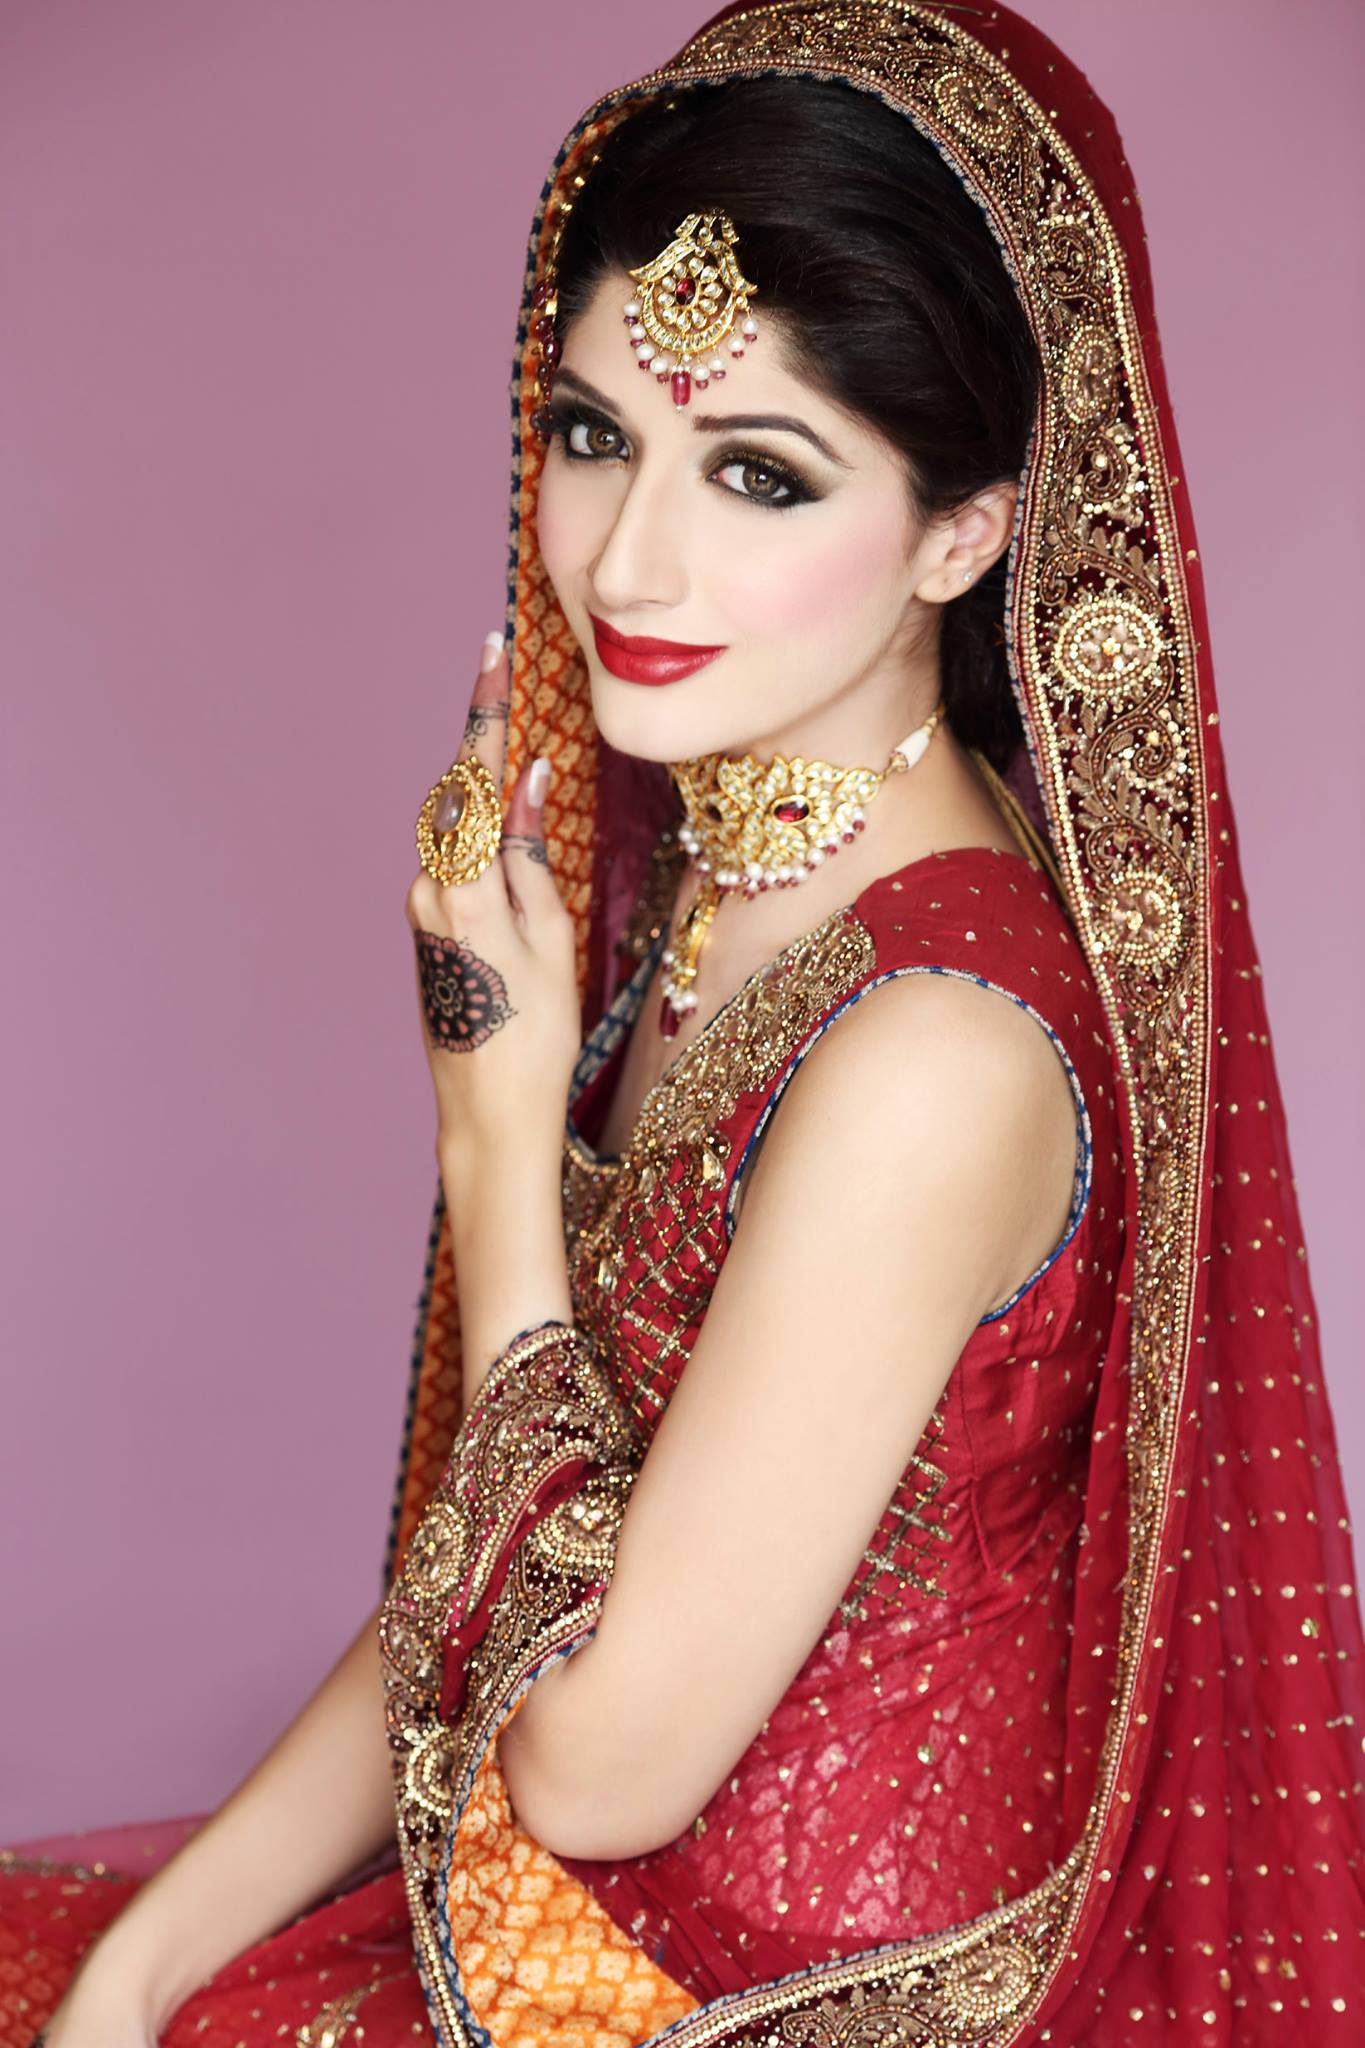 20 pakistani bridal makeup ideas for wedding - makeup - crayon